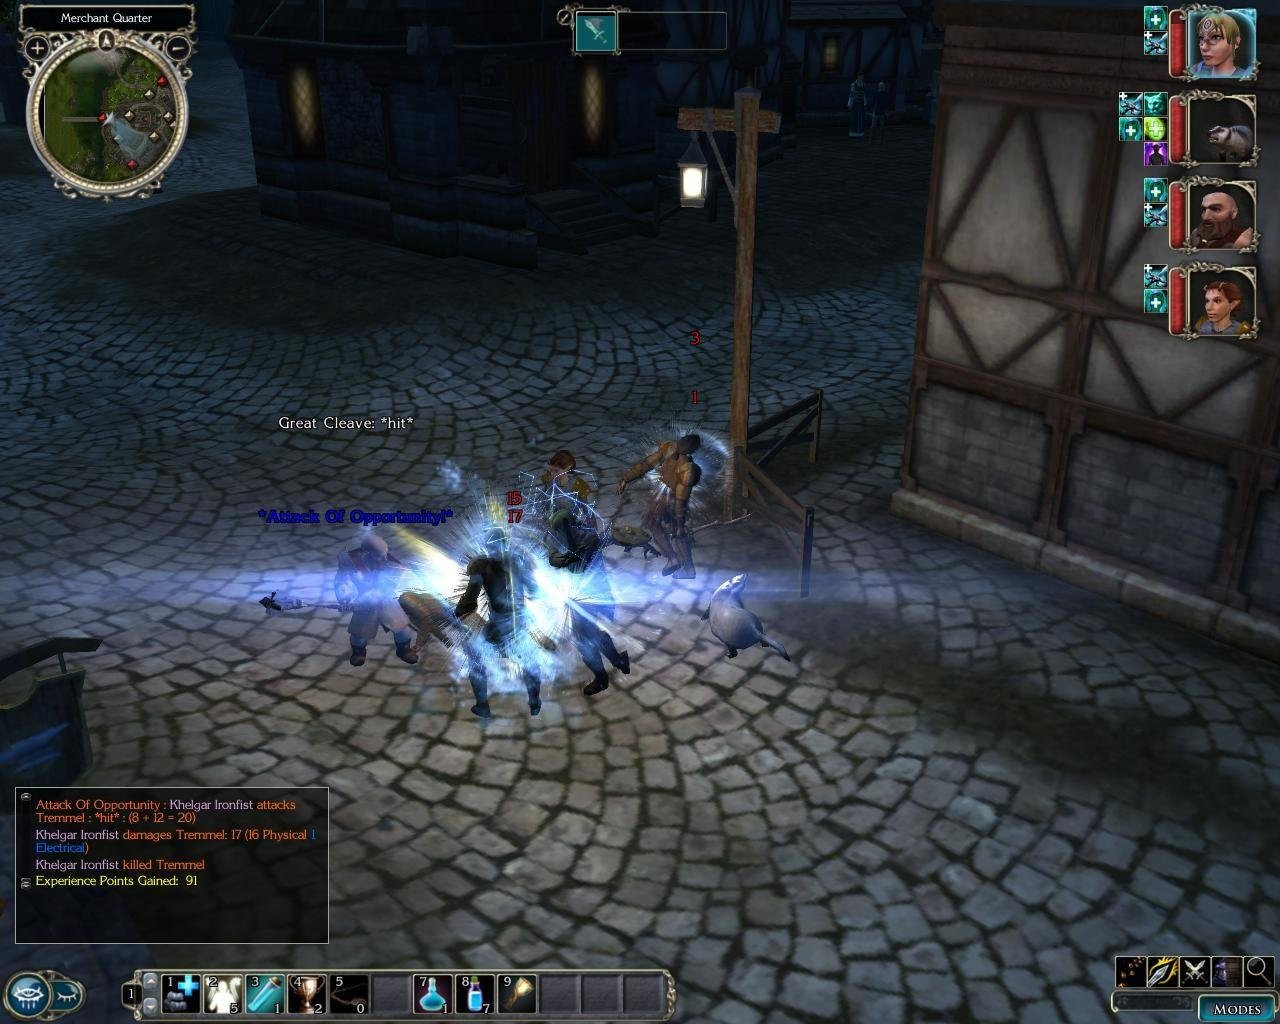 Neverwinter Nights 2 - PC Review and Full Download | Old PC